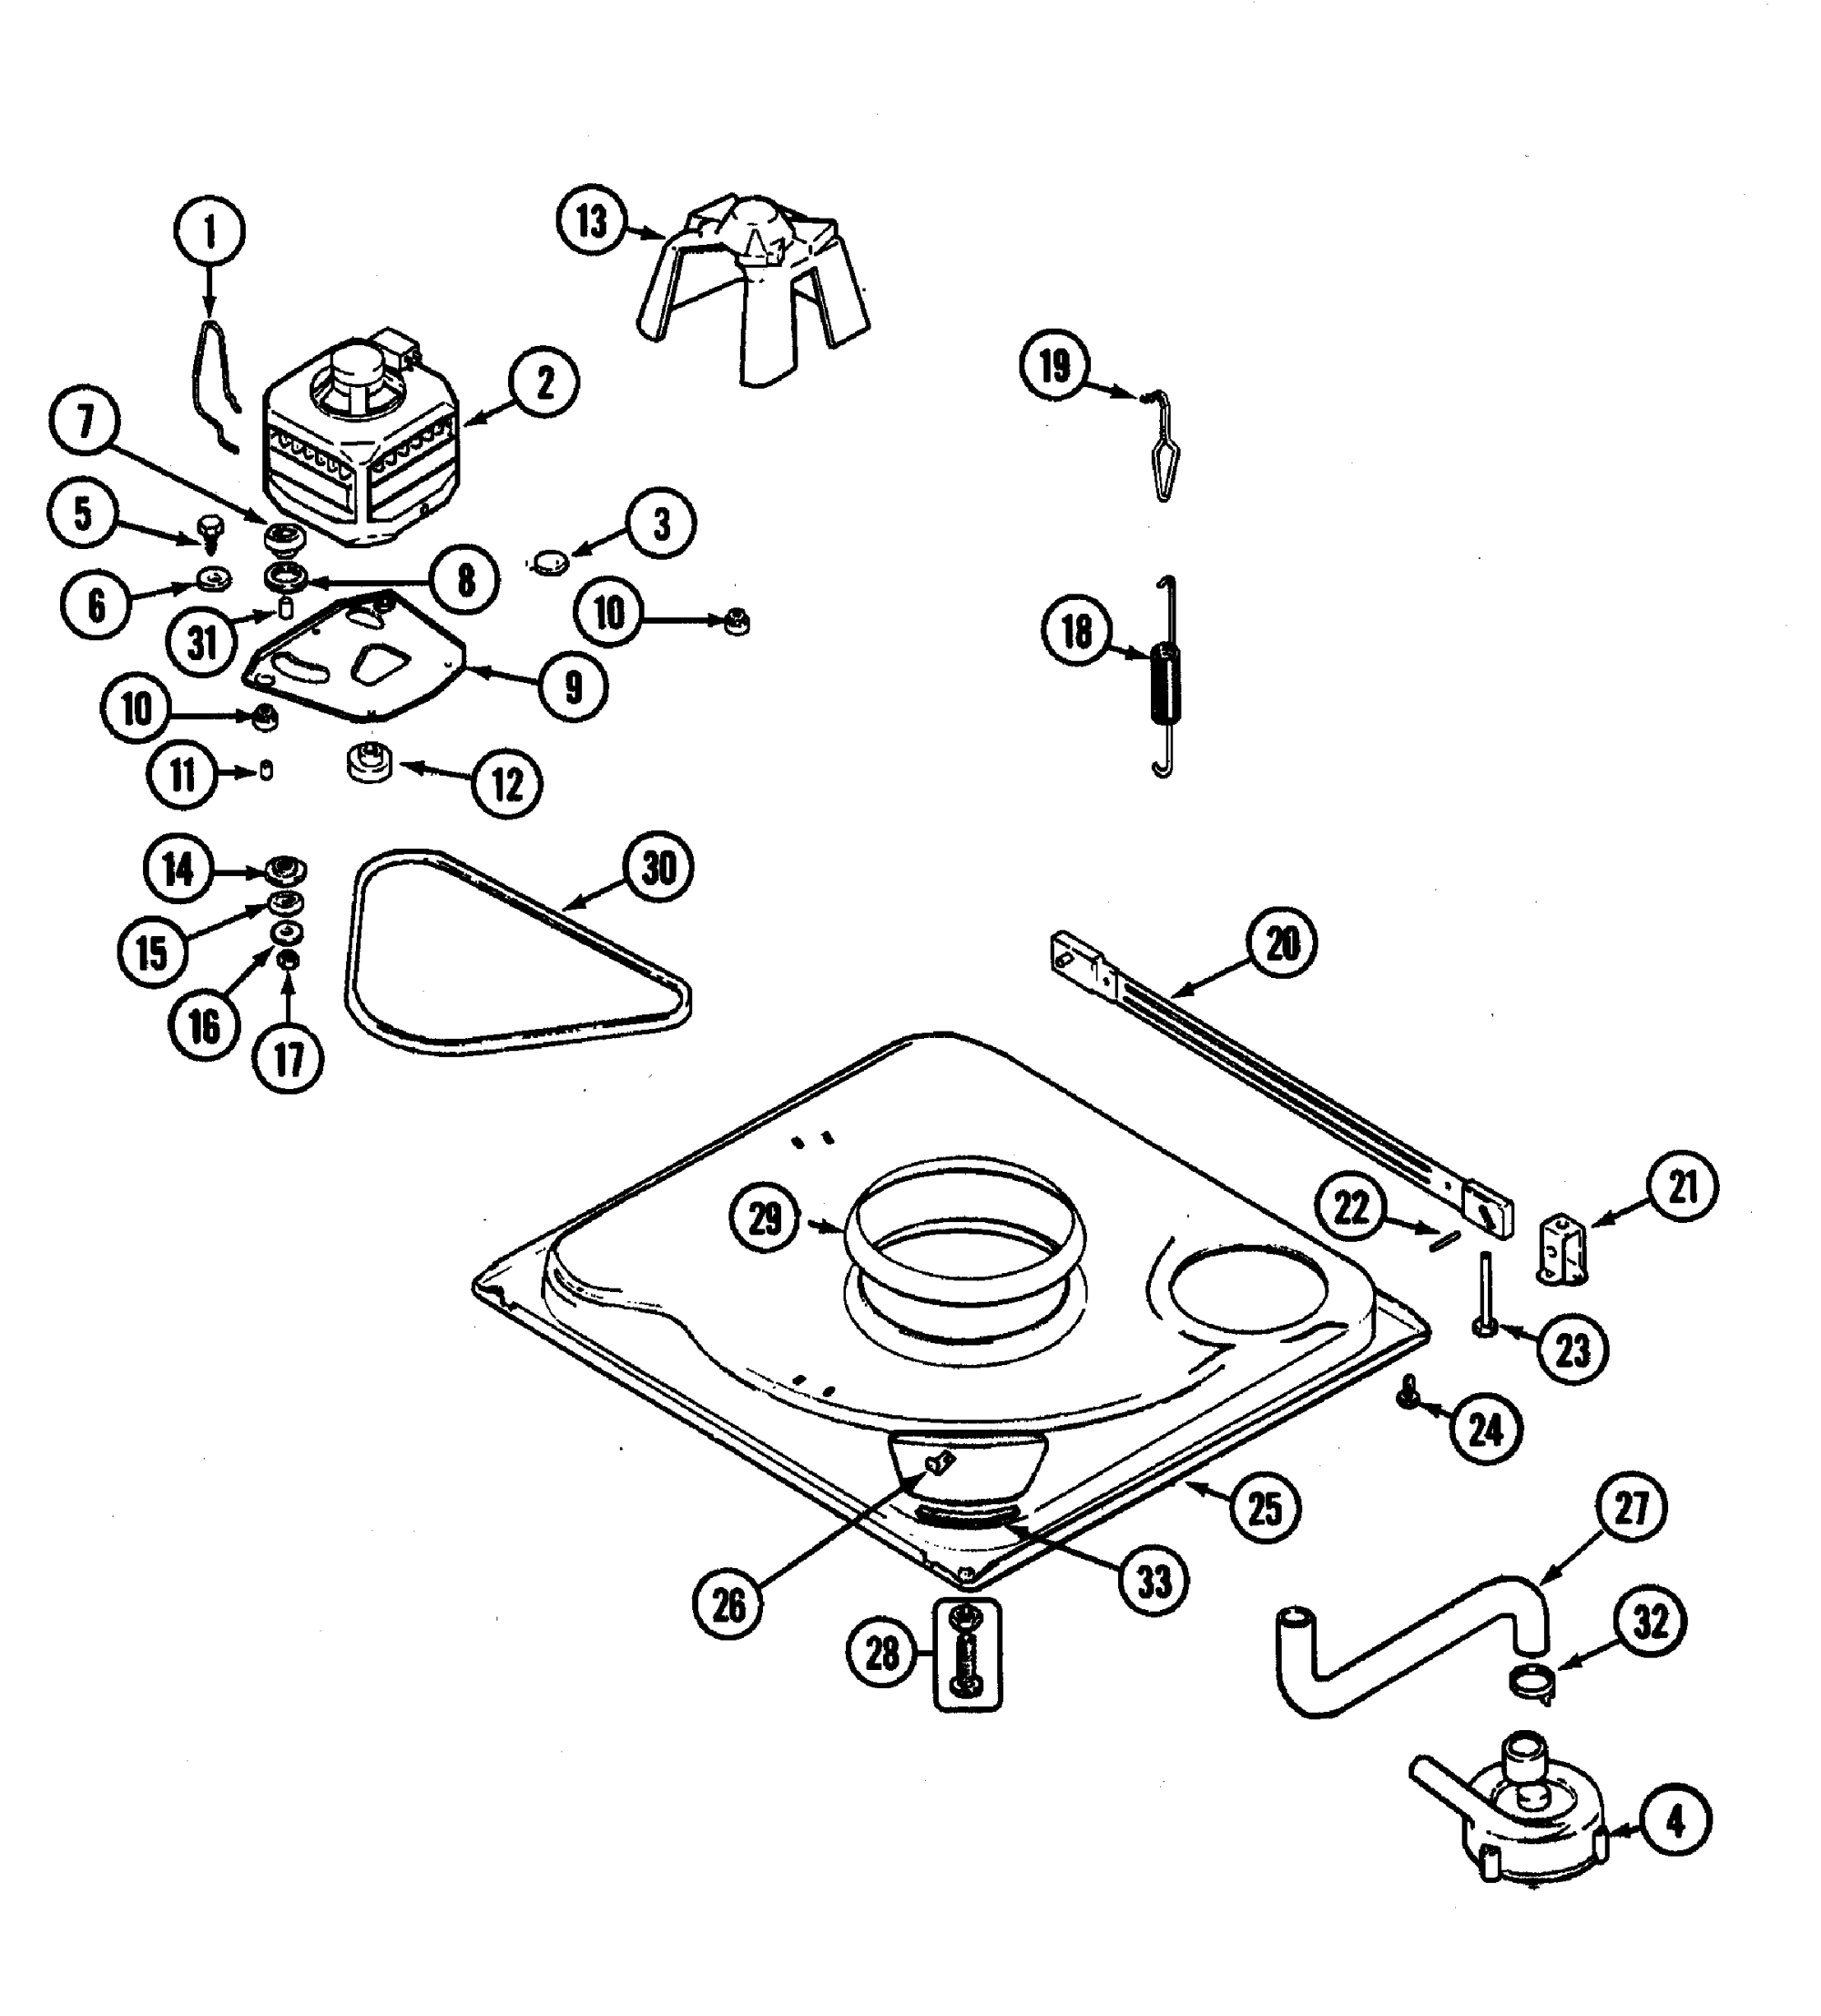 hight resolution of looking for maytag model pav2300aww washer repair replacement parts maytag pav2300aww base diagram